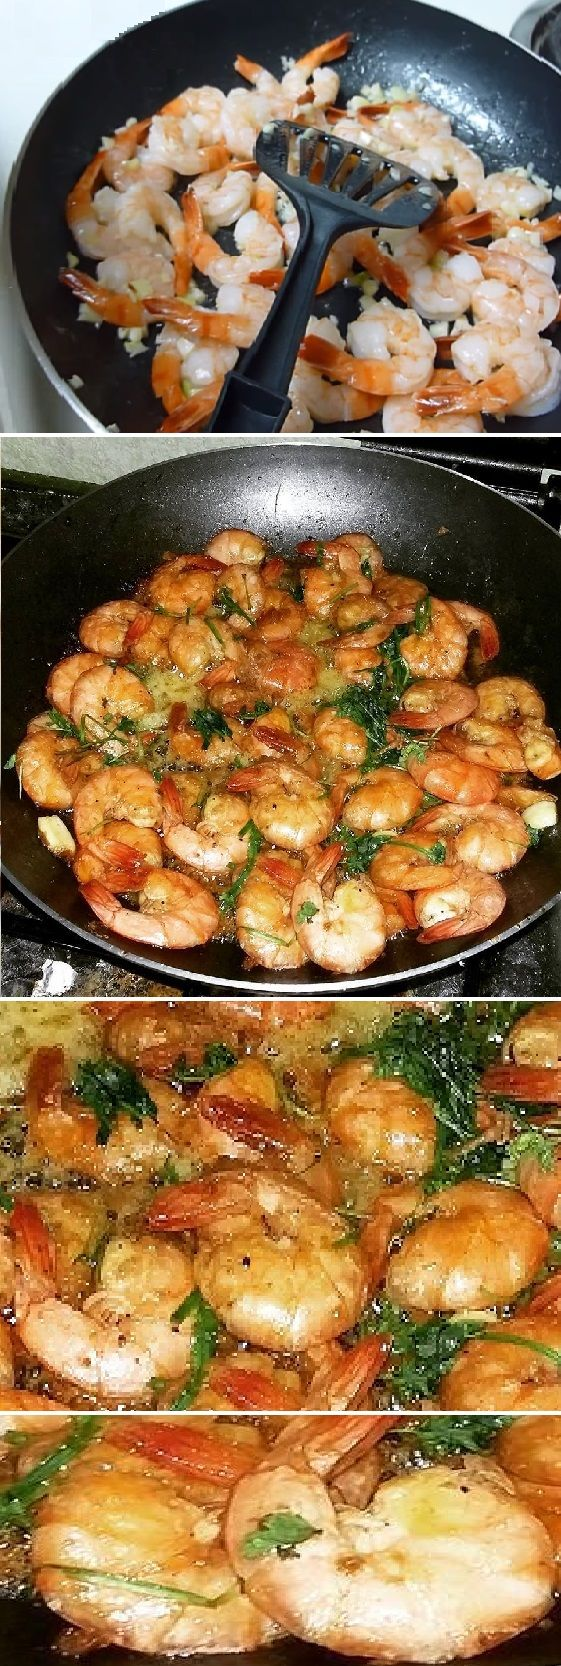 2771 best Comida images on Pinterest | Cooking recipes, Clean eating ...